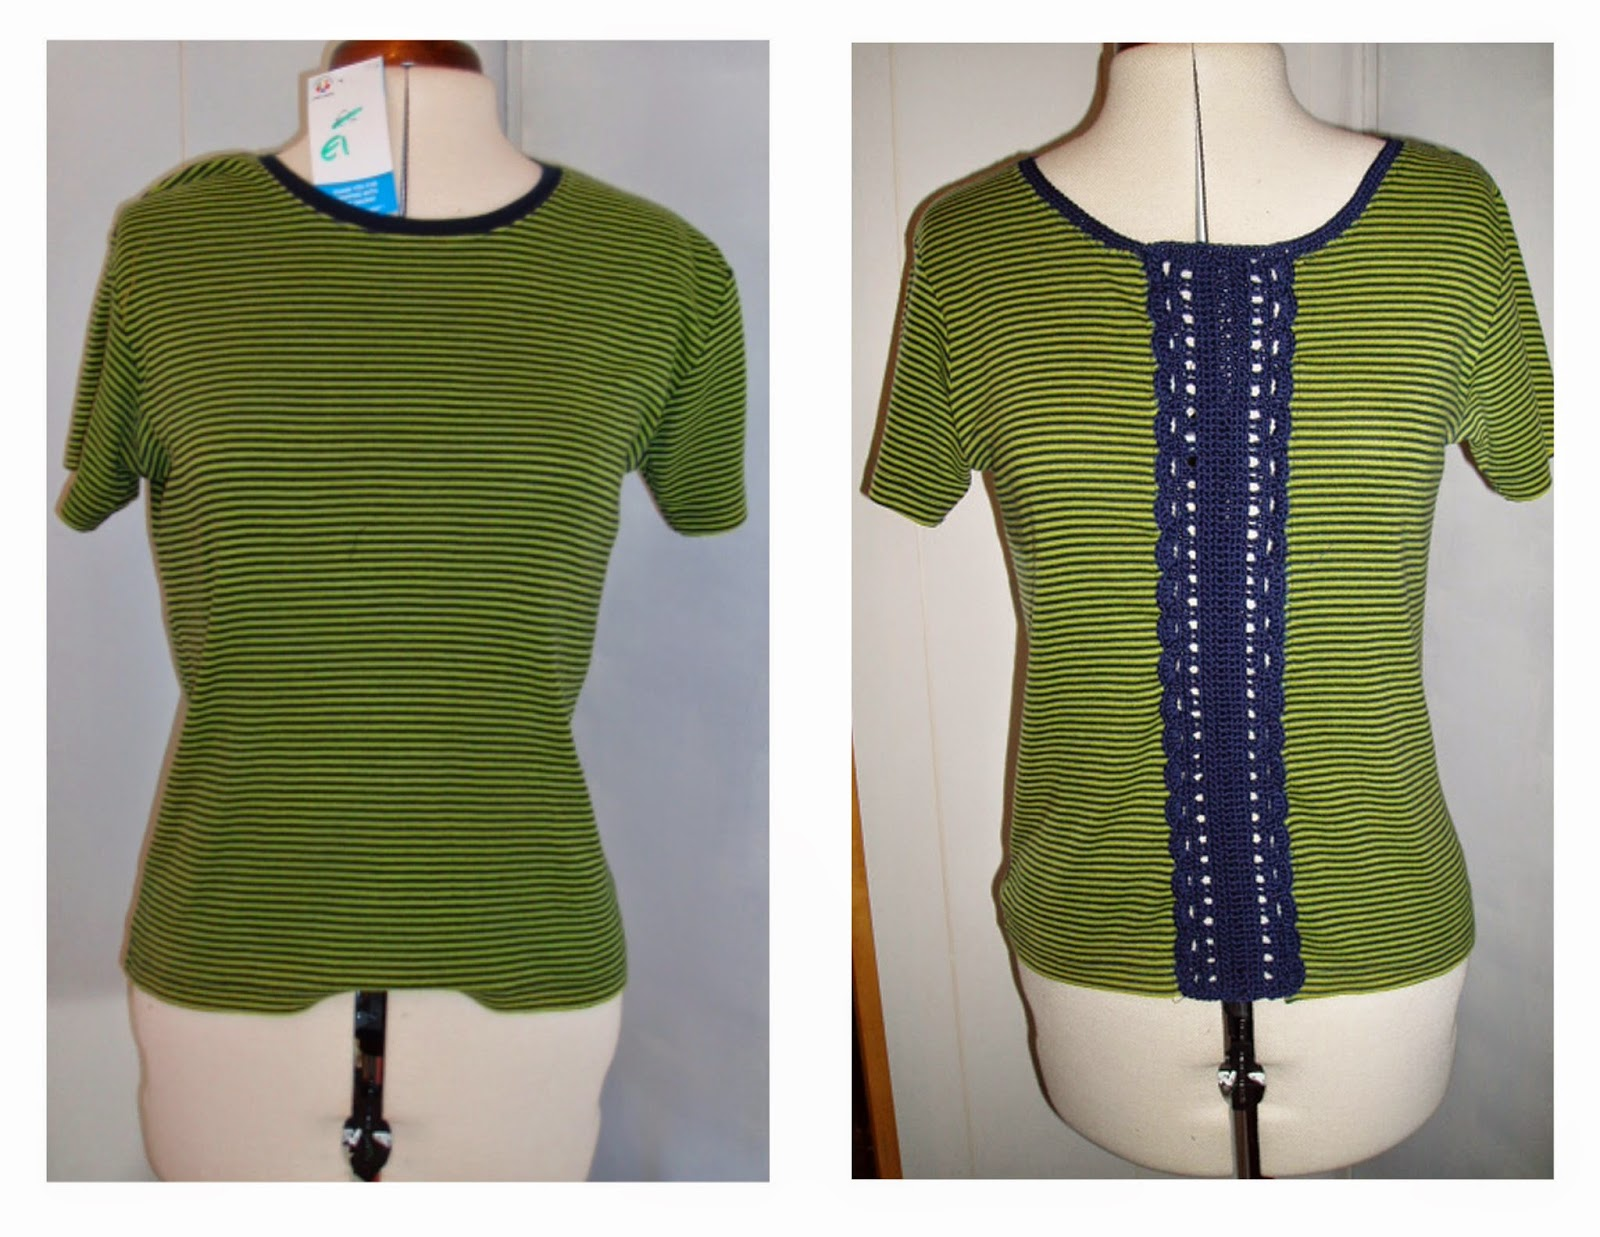 refashion upcycle tee shirt crochet panel